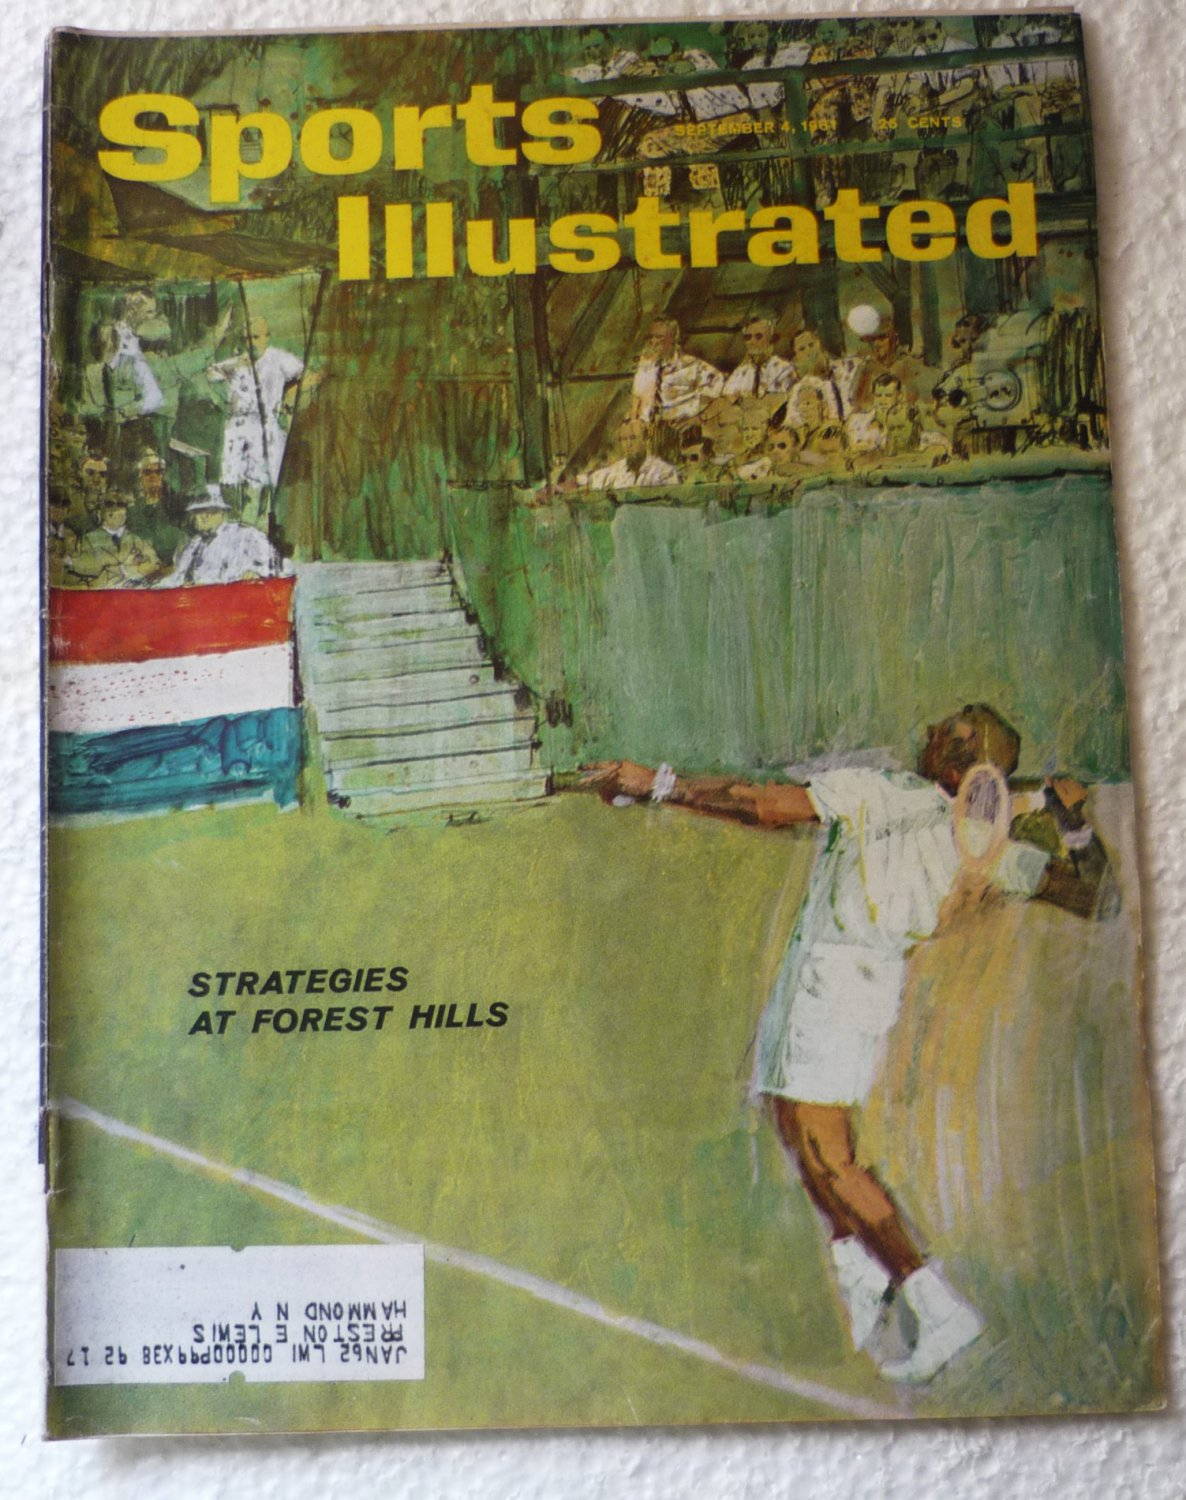 Sports Illustrated Magazine Sept 4 1961 Forest Hills Strategies on Cover